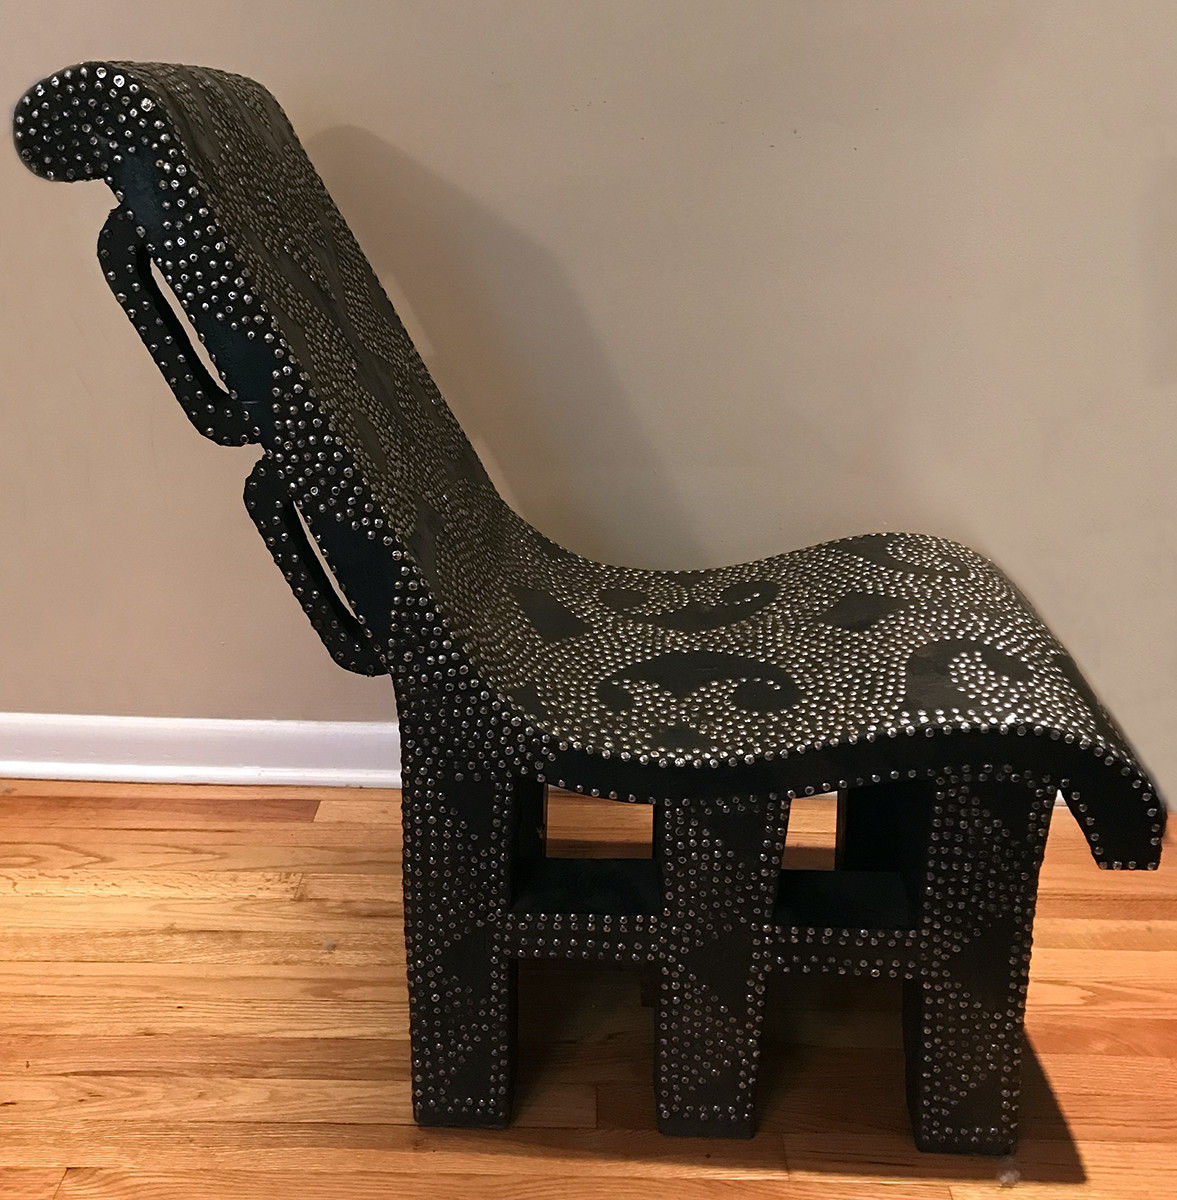 Ngombe Chair from the Congo